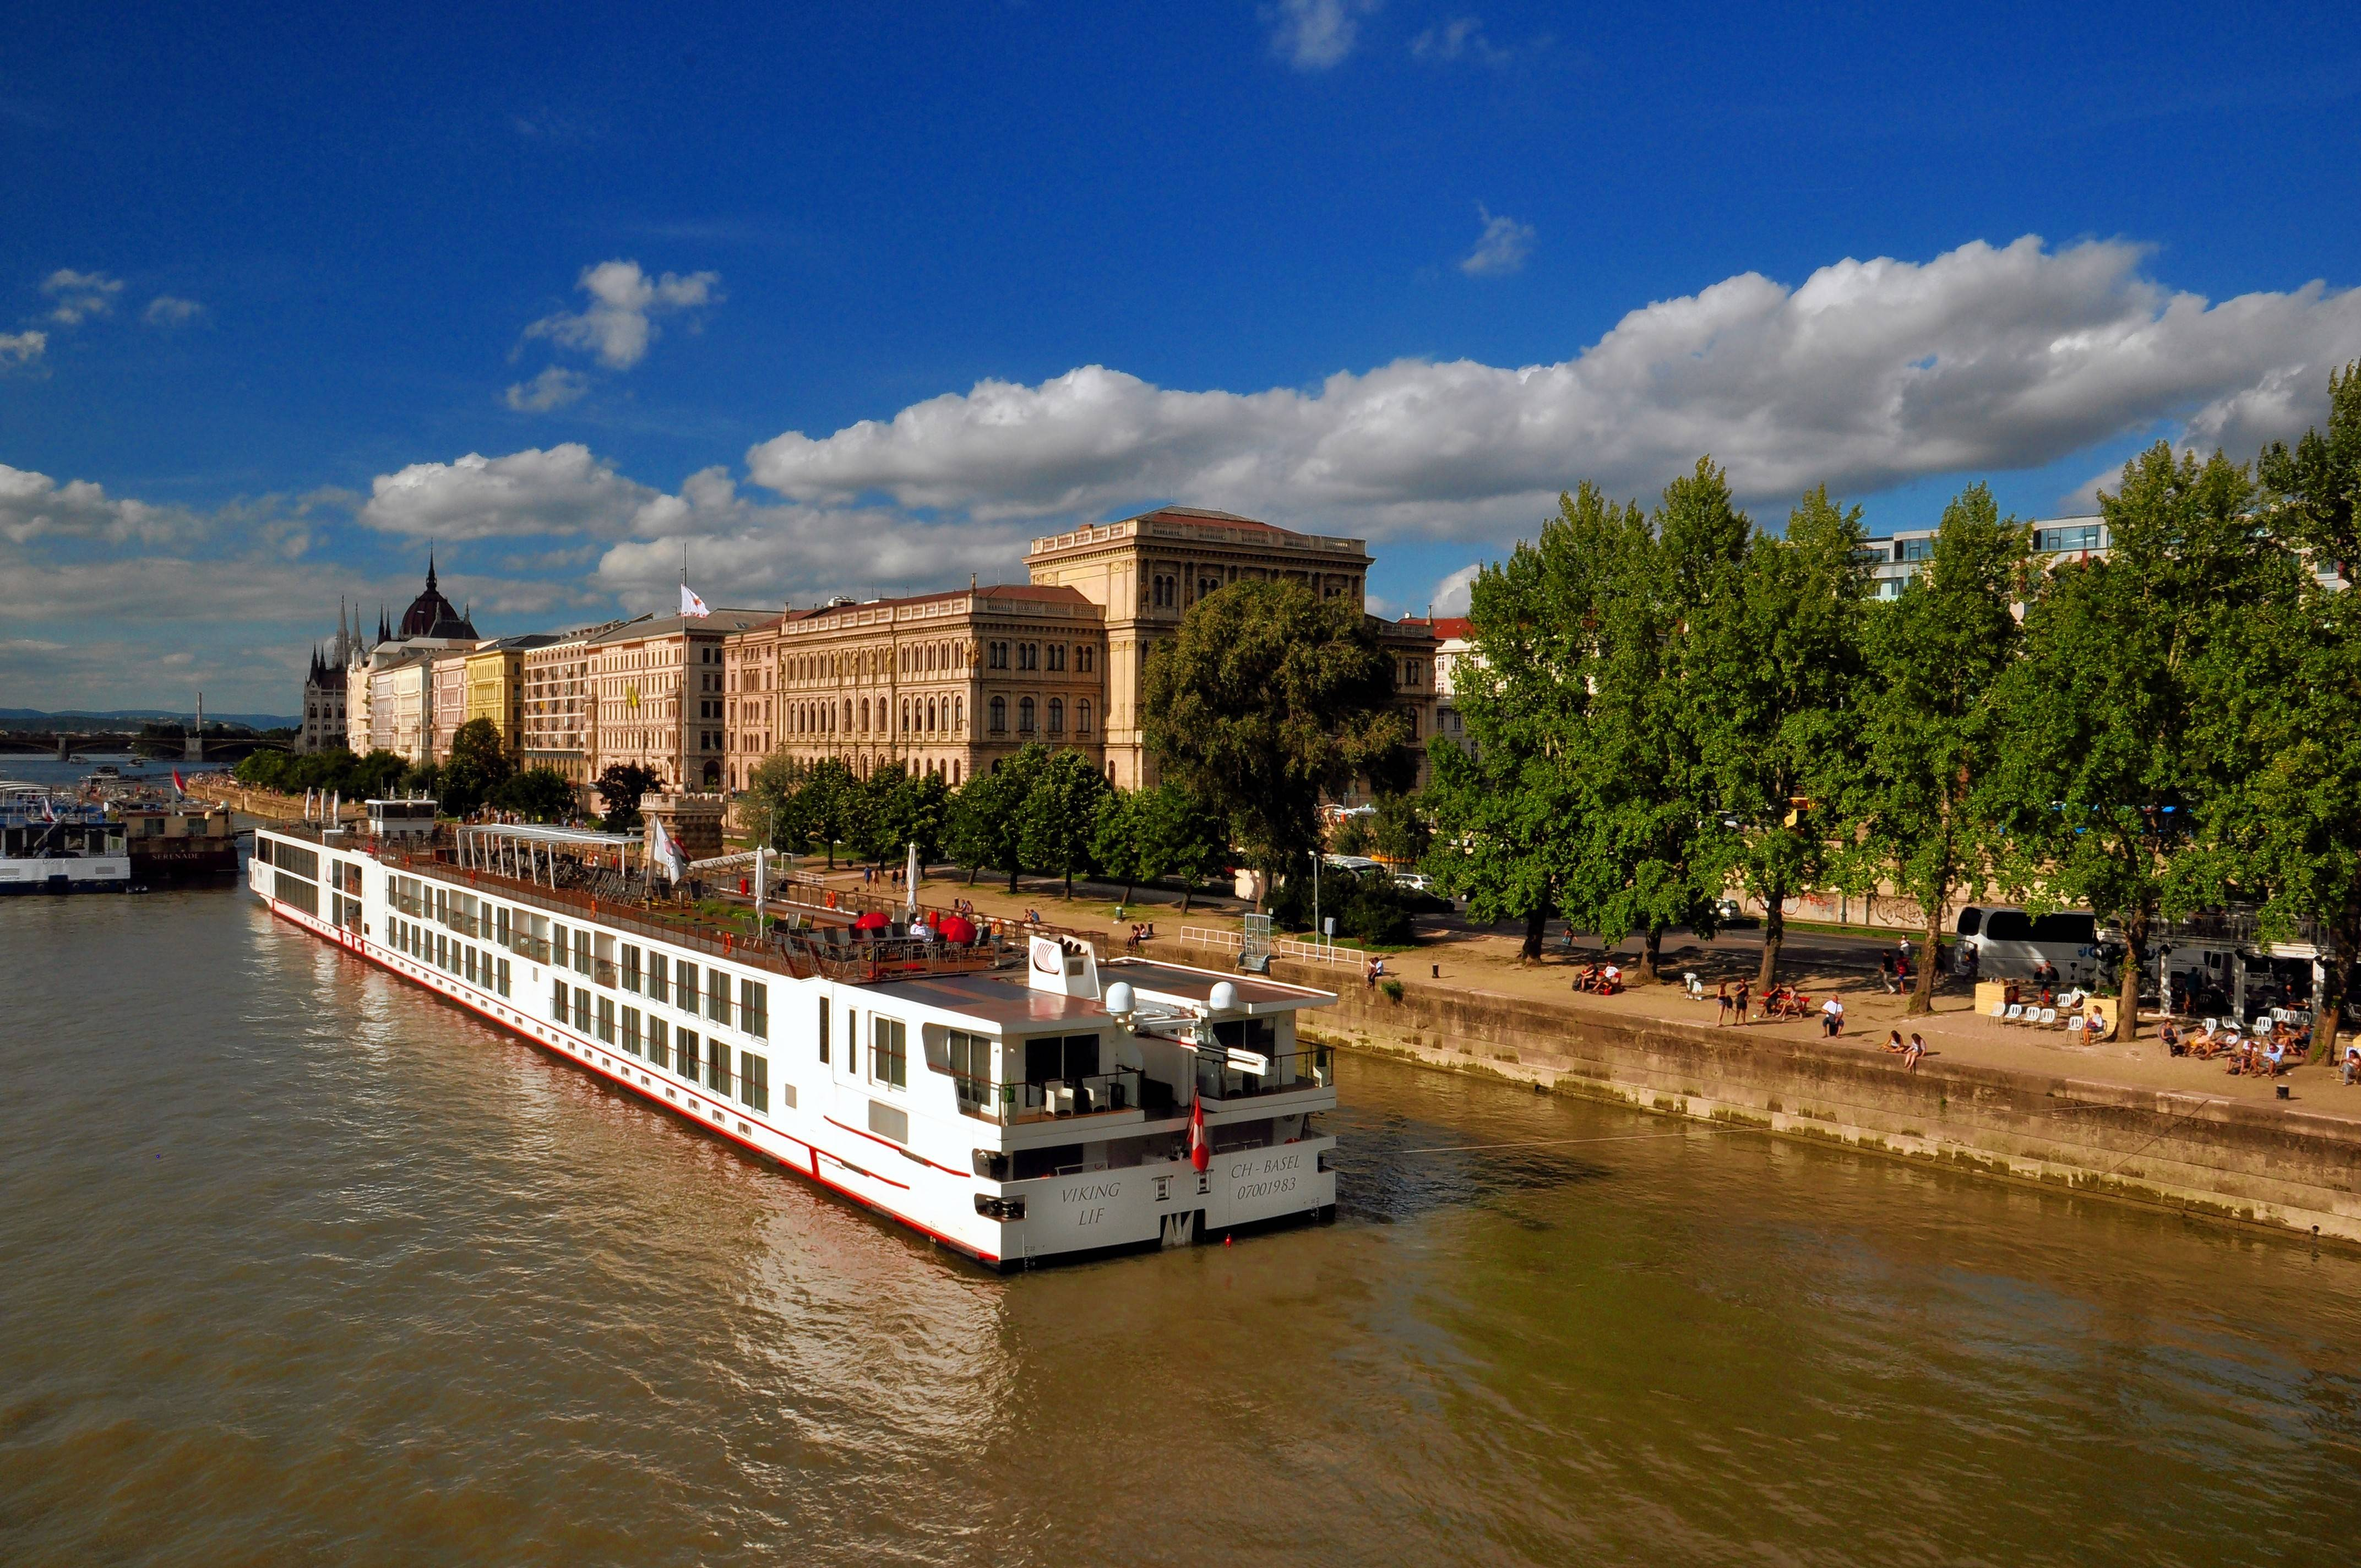 The Lif, one of several longboats operated by Viking River Cruises, docks on the Danube in Budapest.